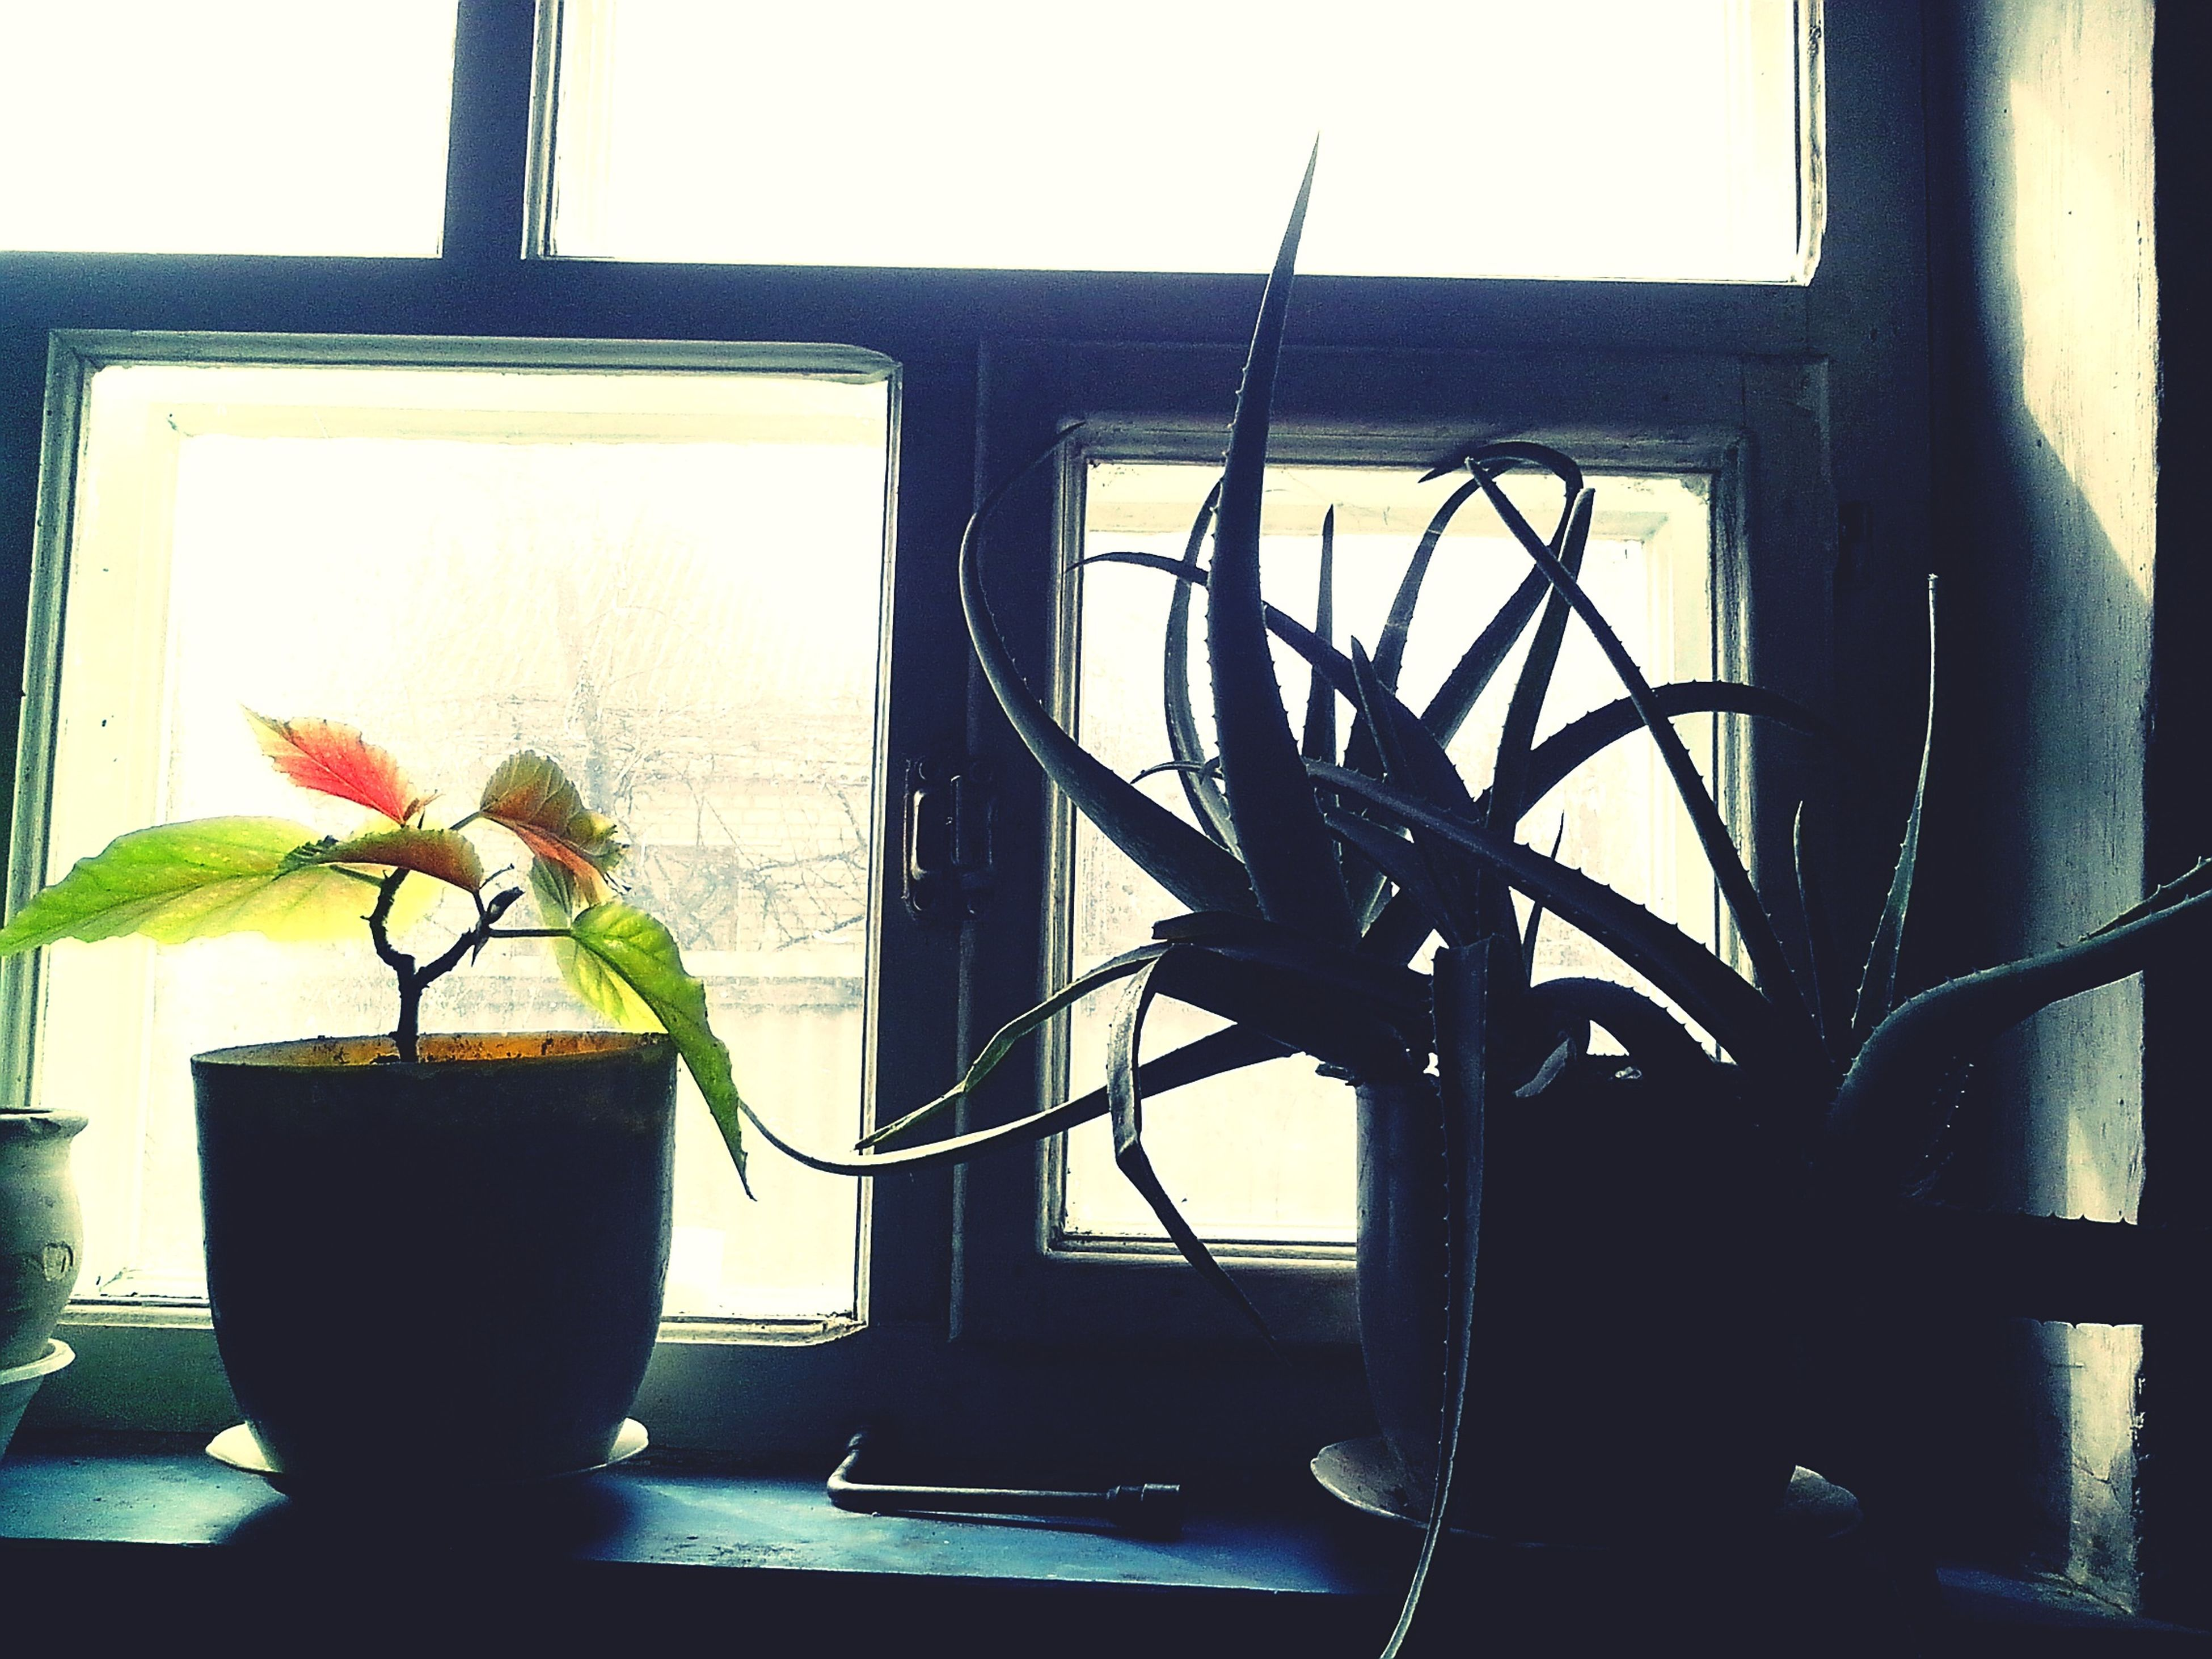 window, indoors, potted plant, plant, window sill, home interior, built structure, architecture, glass - material, growth, table, wall - building feature, house, wall, sunlight, flower, vase, day, no people, close-up